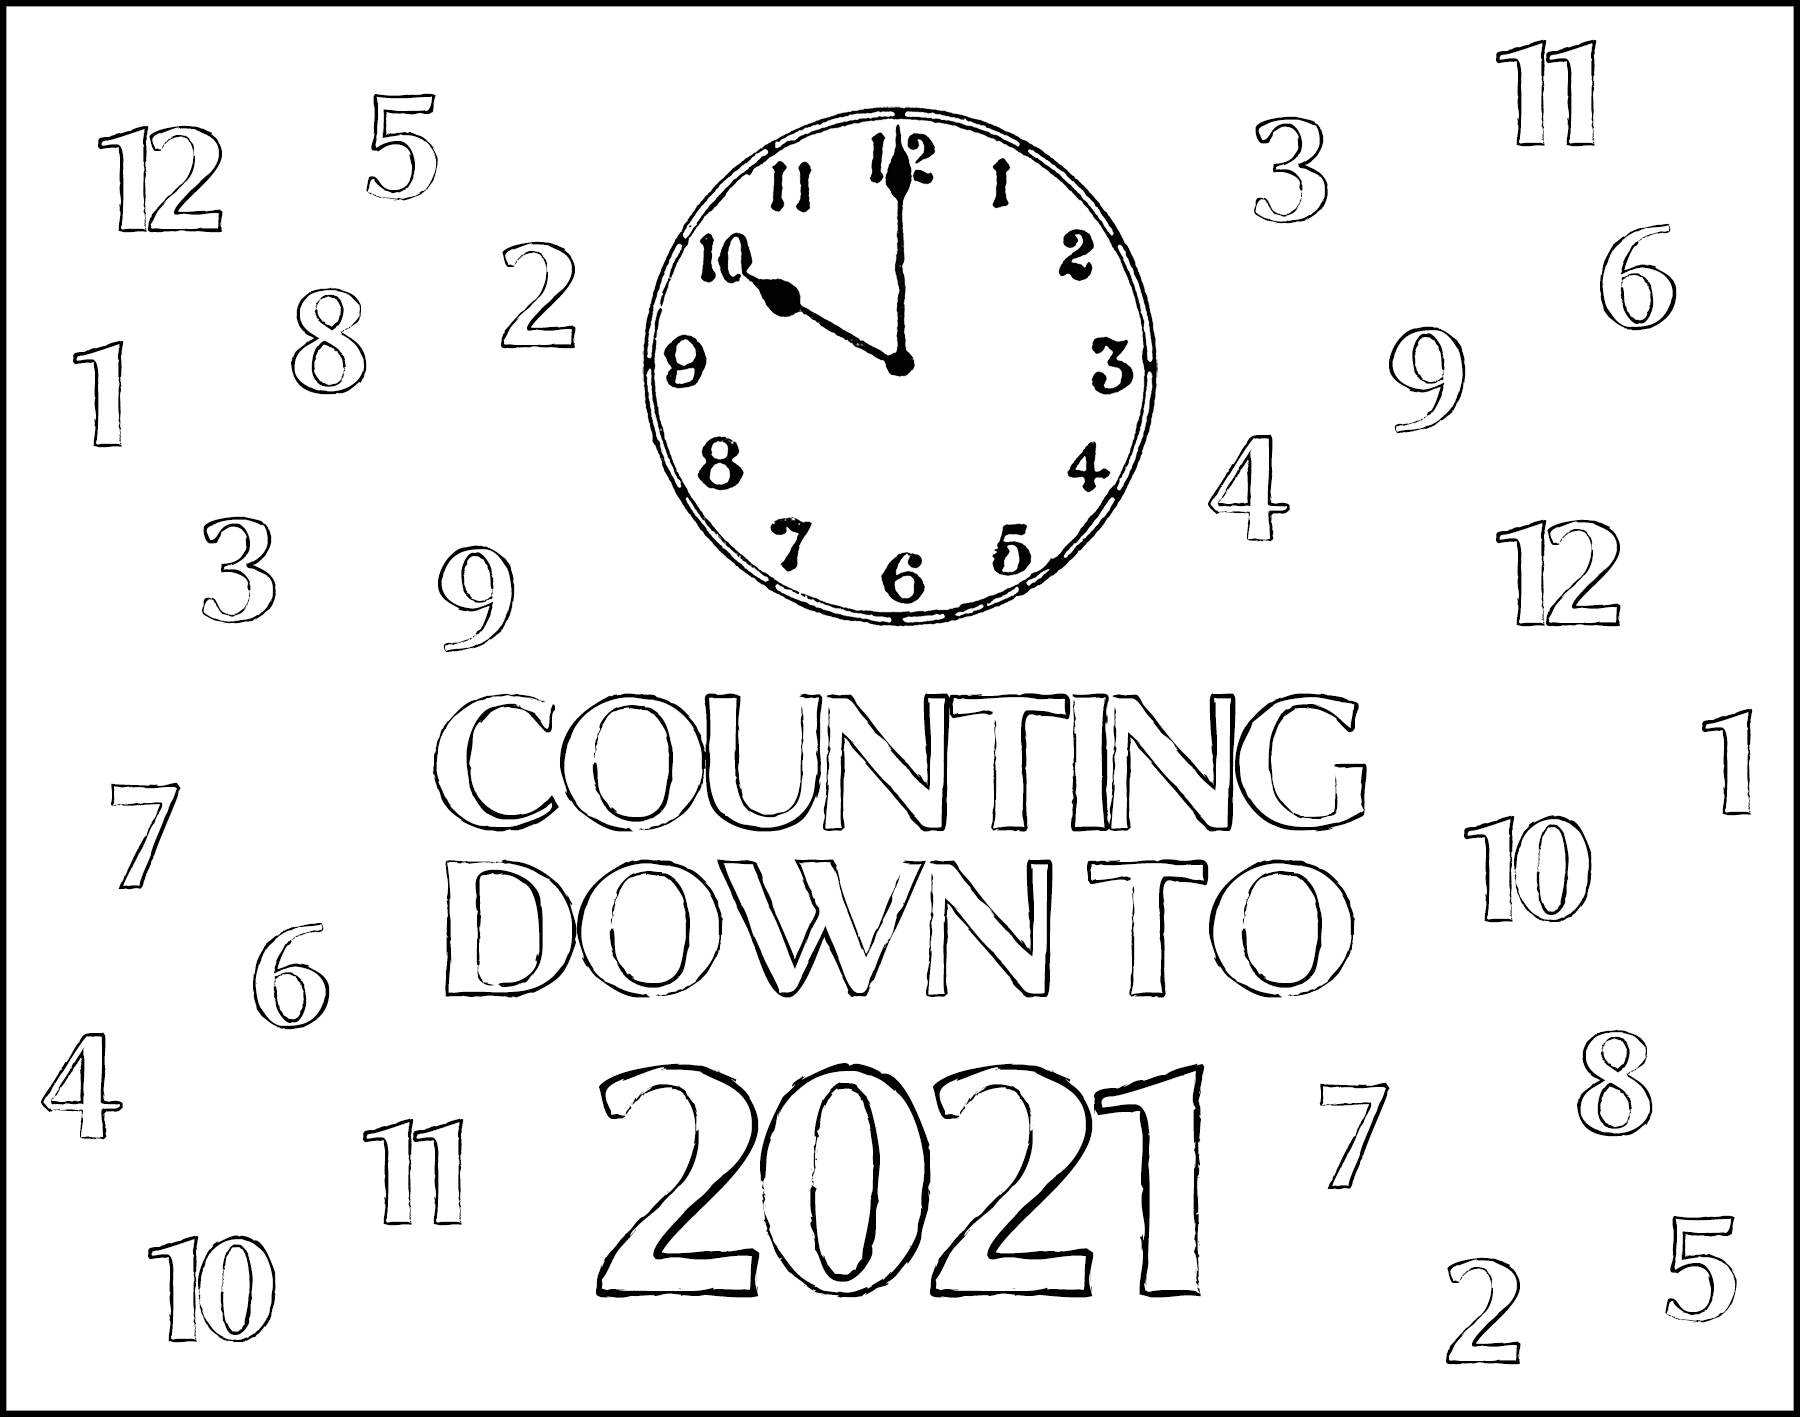 Counting Down to 2021 New Year's Eve Placemat • Rose ...